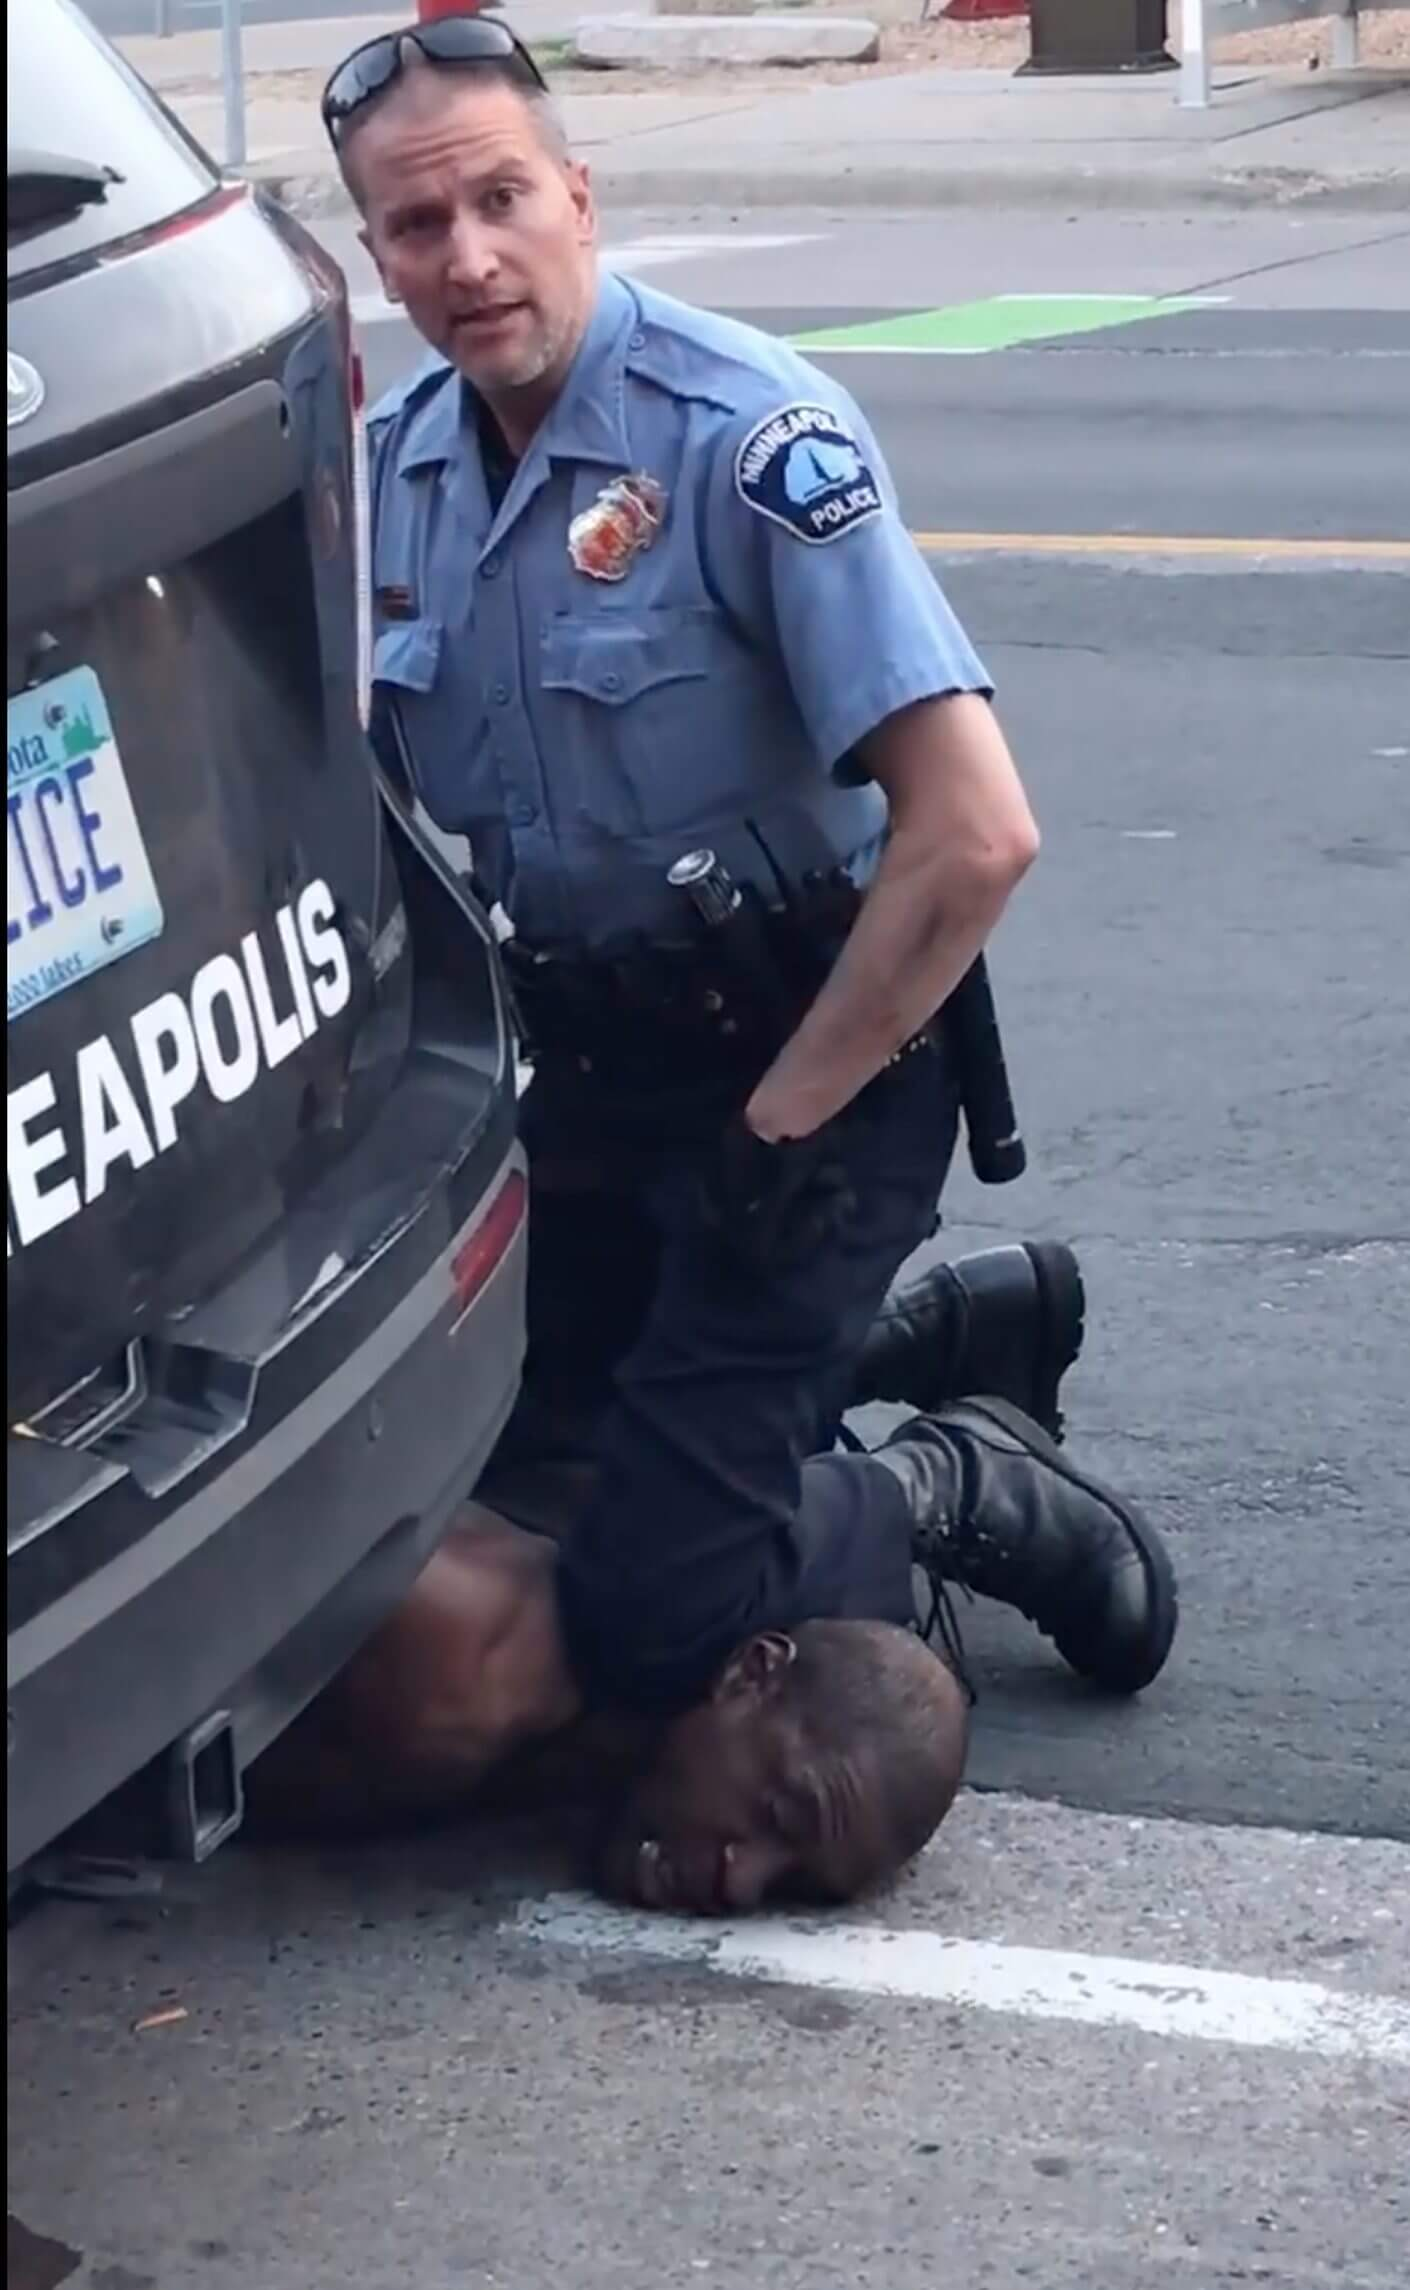 The police officer with his knee on Floyd's neck